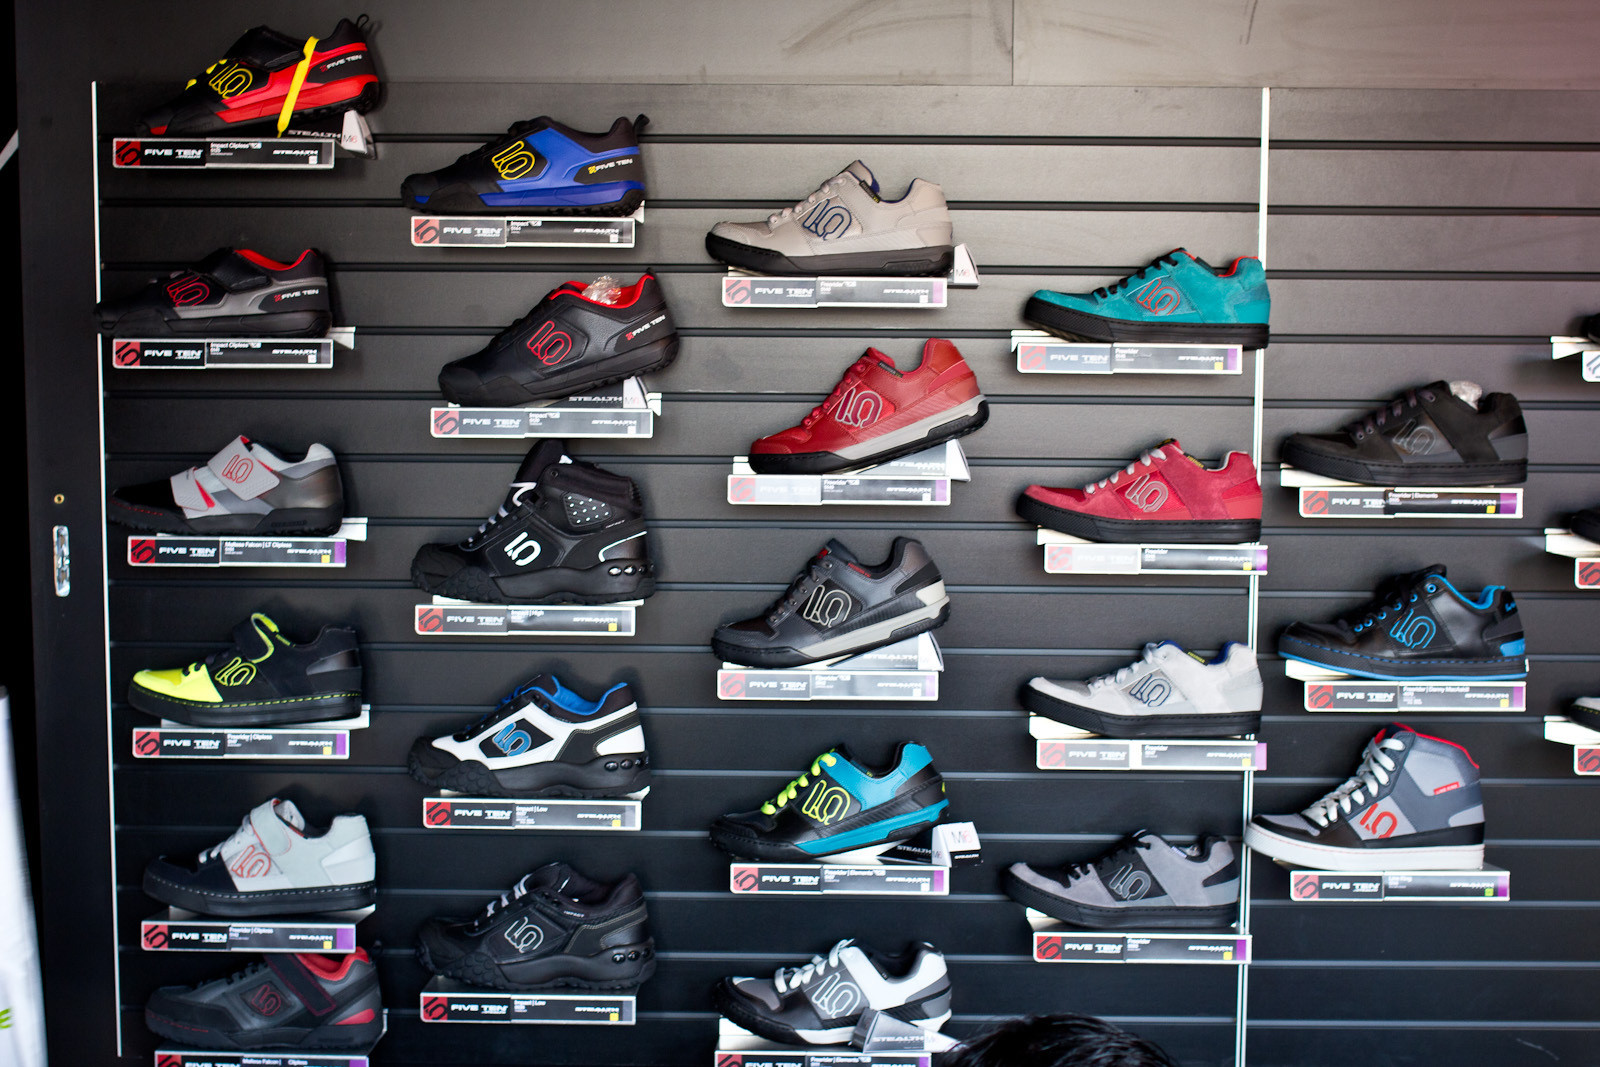 2014 Five Ten Shoe Colors - 2014 Mountain Bike Apparel & Protection at Eurobike 2013 - Mountain Biking Pictures - Vital MTB